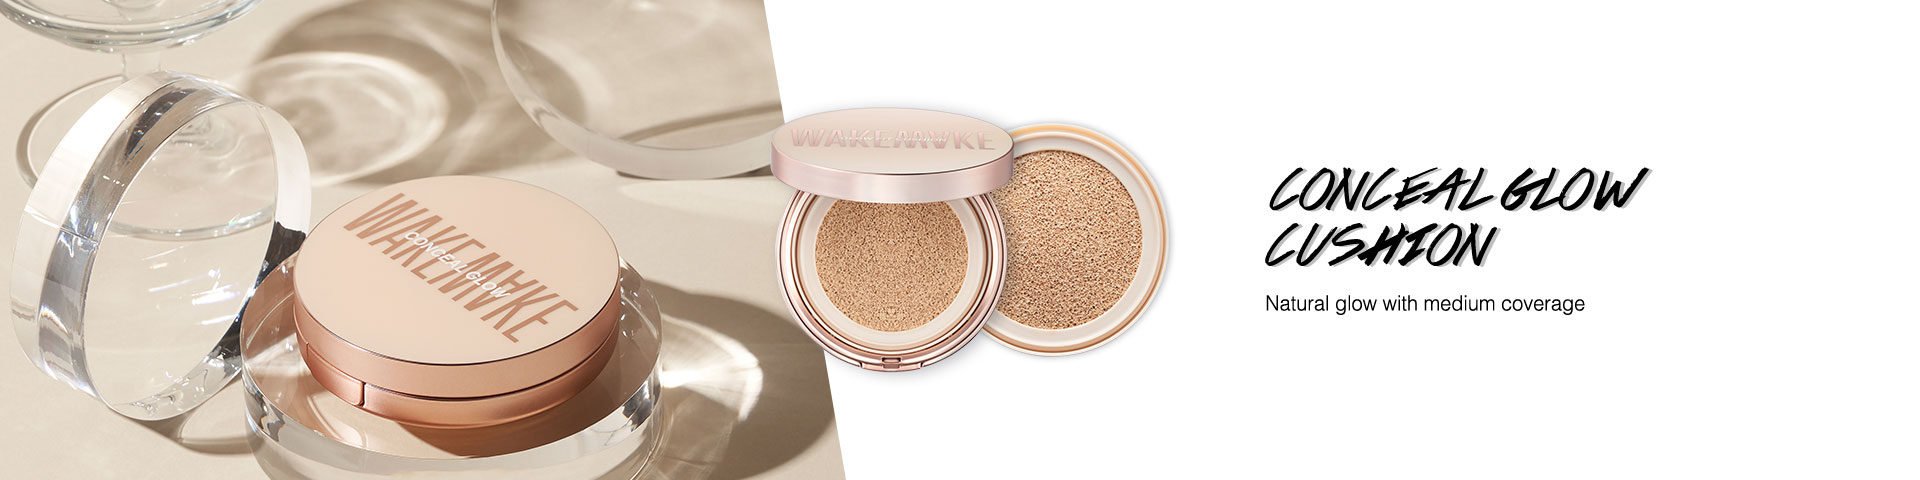 CONCEAL GLOW CUSHION Lightweight coverage and dewy, radiant glow